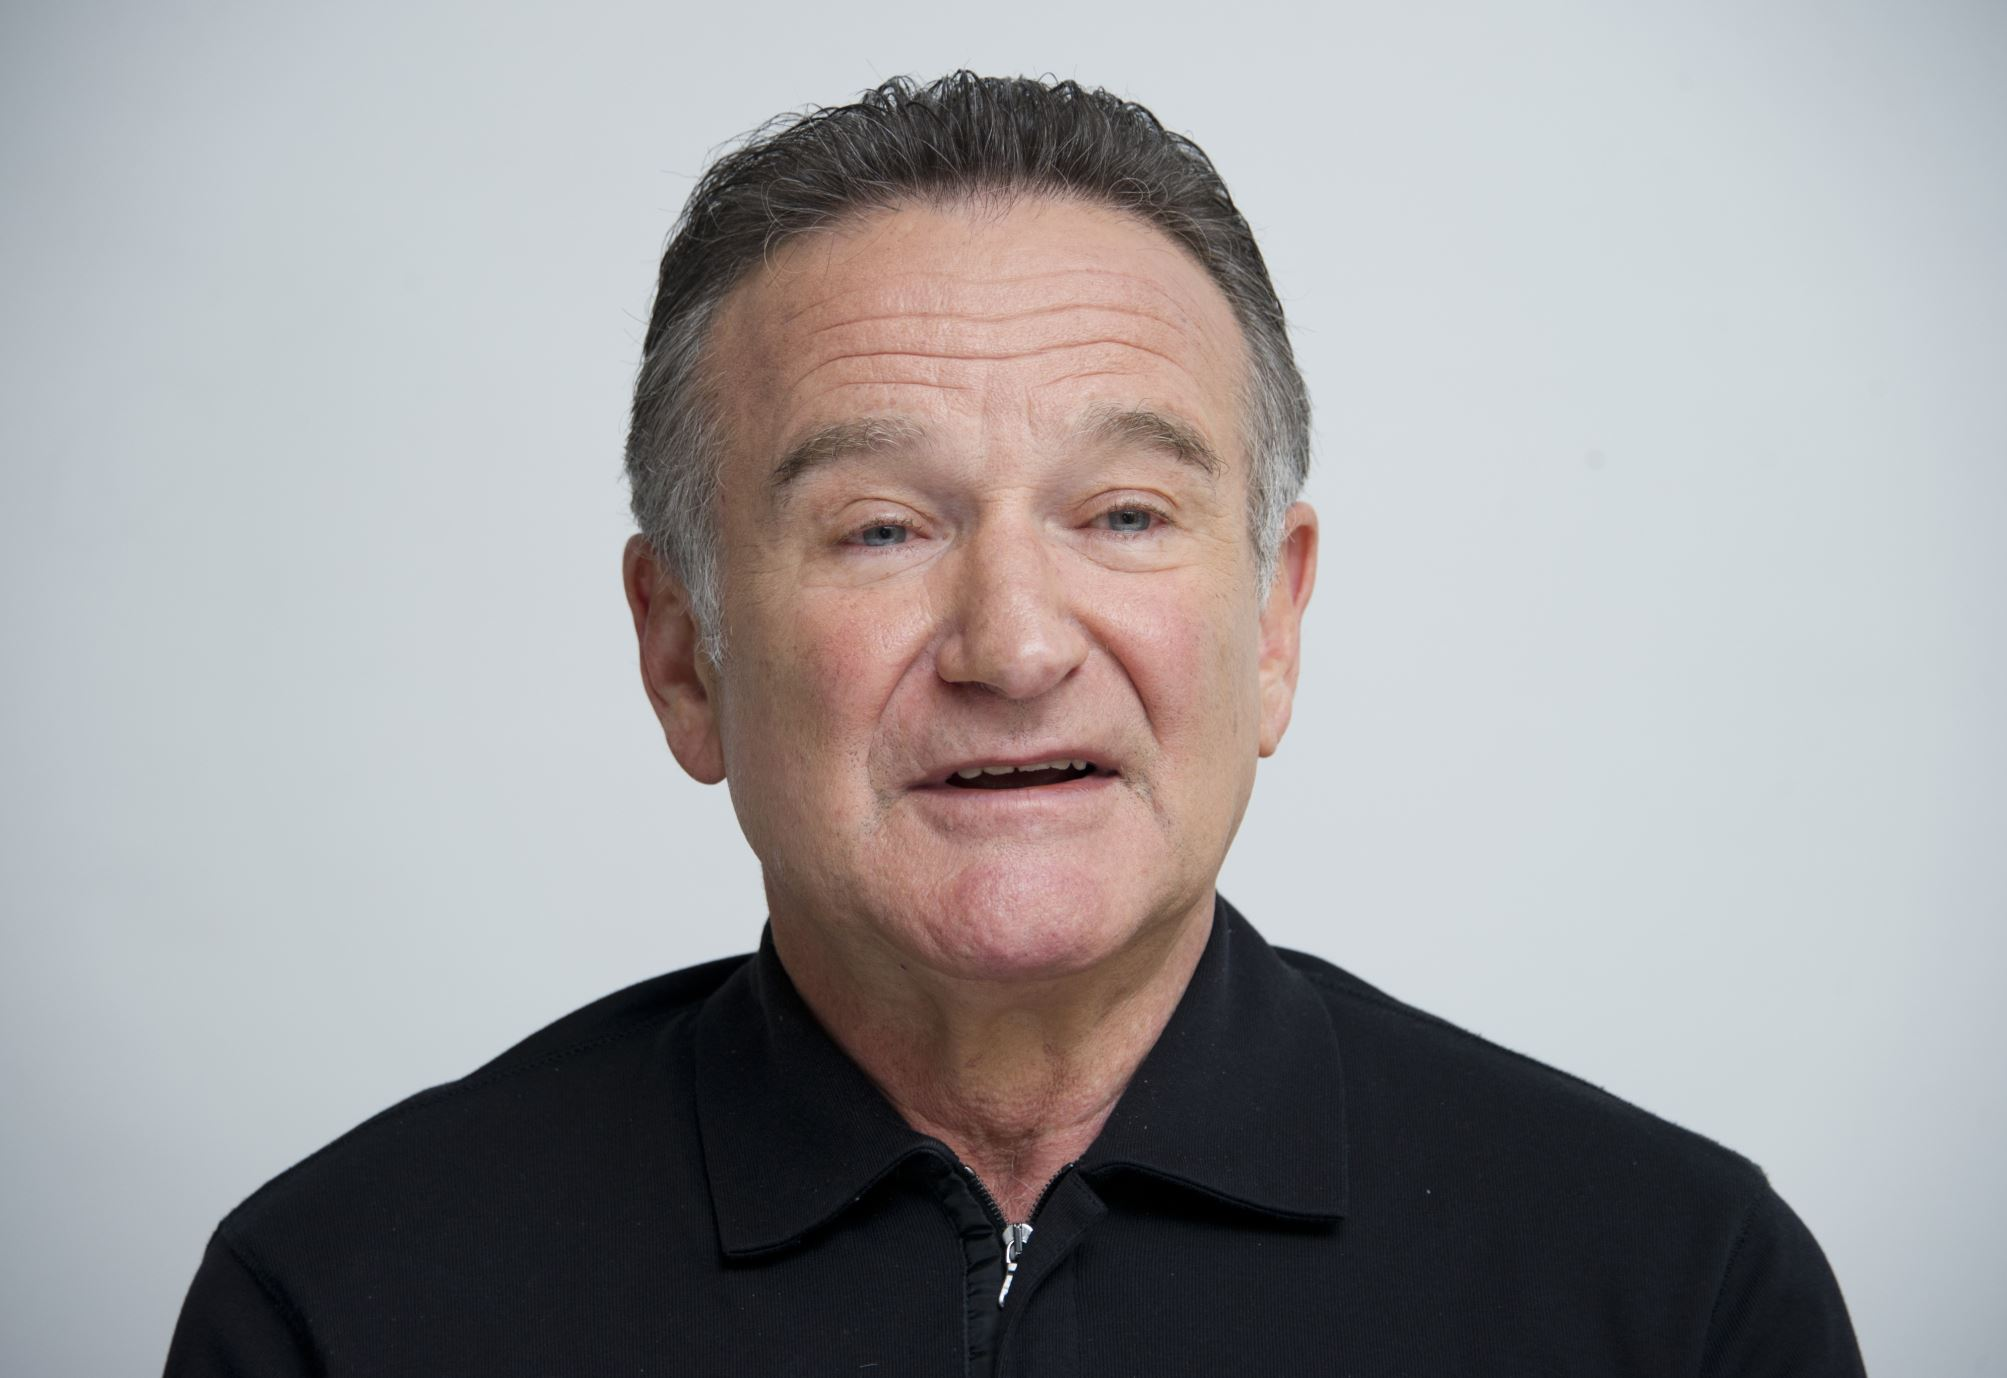 Star of highly acclaimed films like Mrs. Doubtfire and Good Will Hunting, he established his career both as a stand-up comedian and a film actor. Much to the shock of his fans, Williams, 63, committed suicide at his home in Paradise Cay, California.